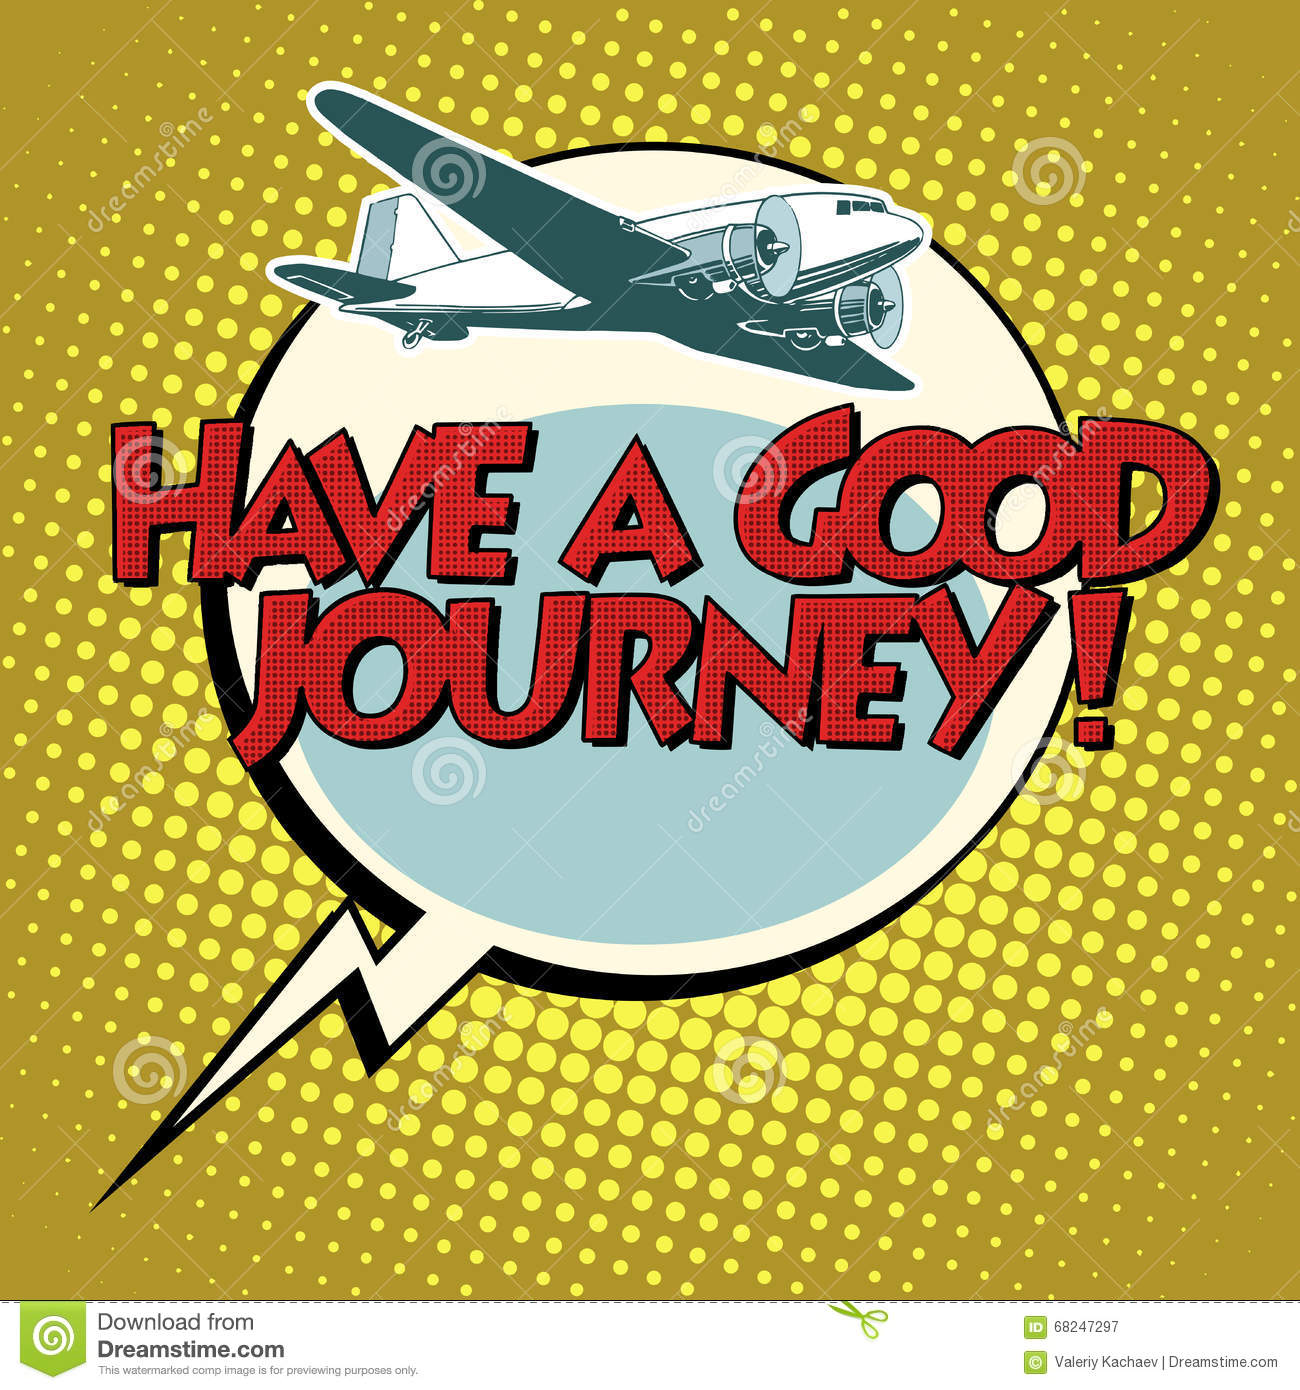 have a good journey flight plane illustration 68247297 - megapixl